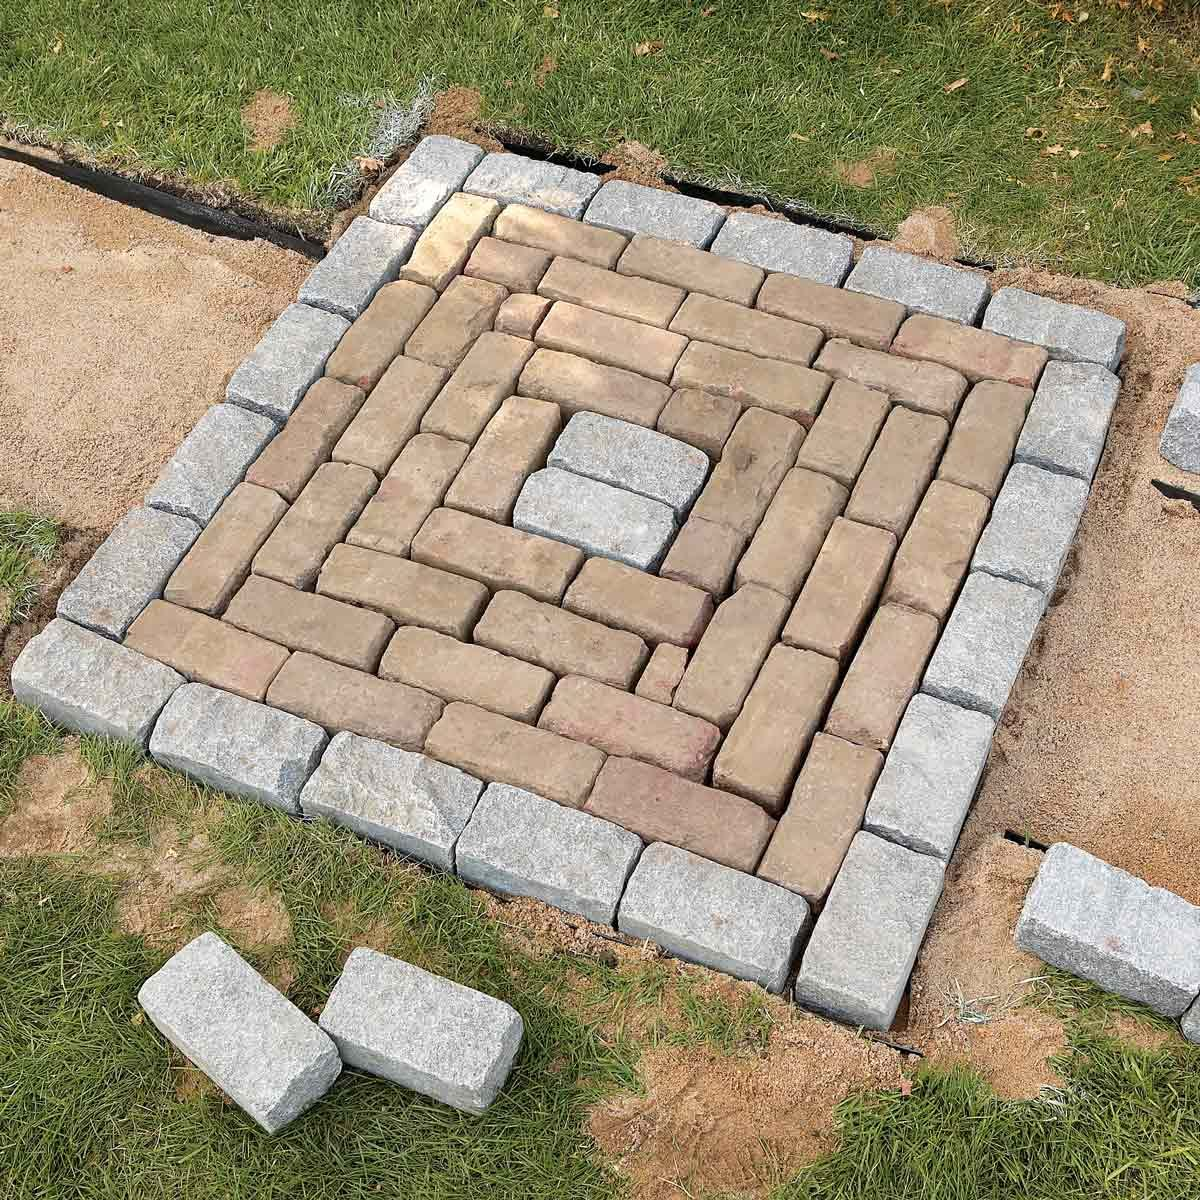 Build A Brick Pathway In The Garden The Family Handyman